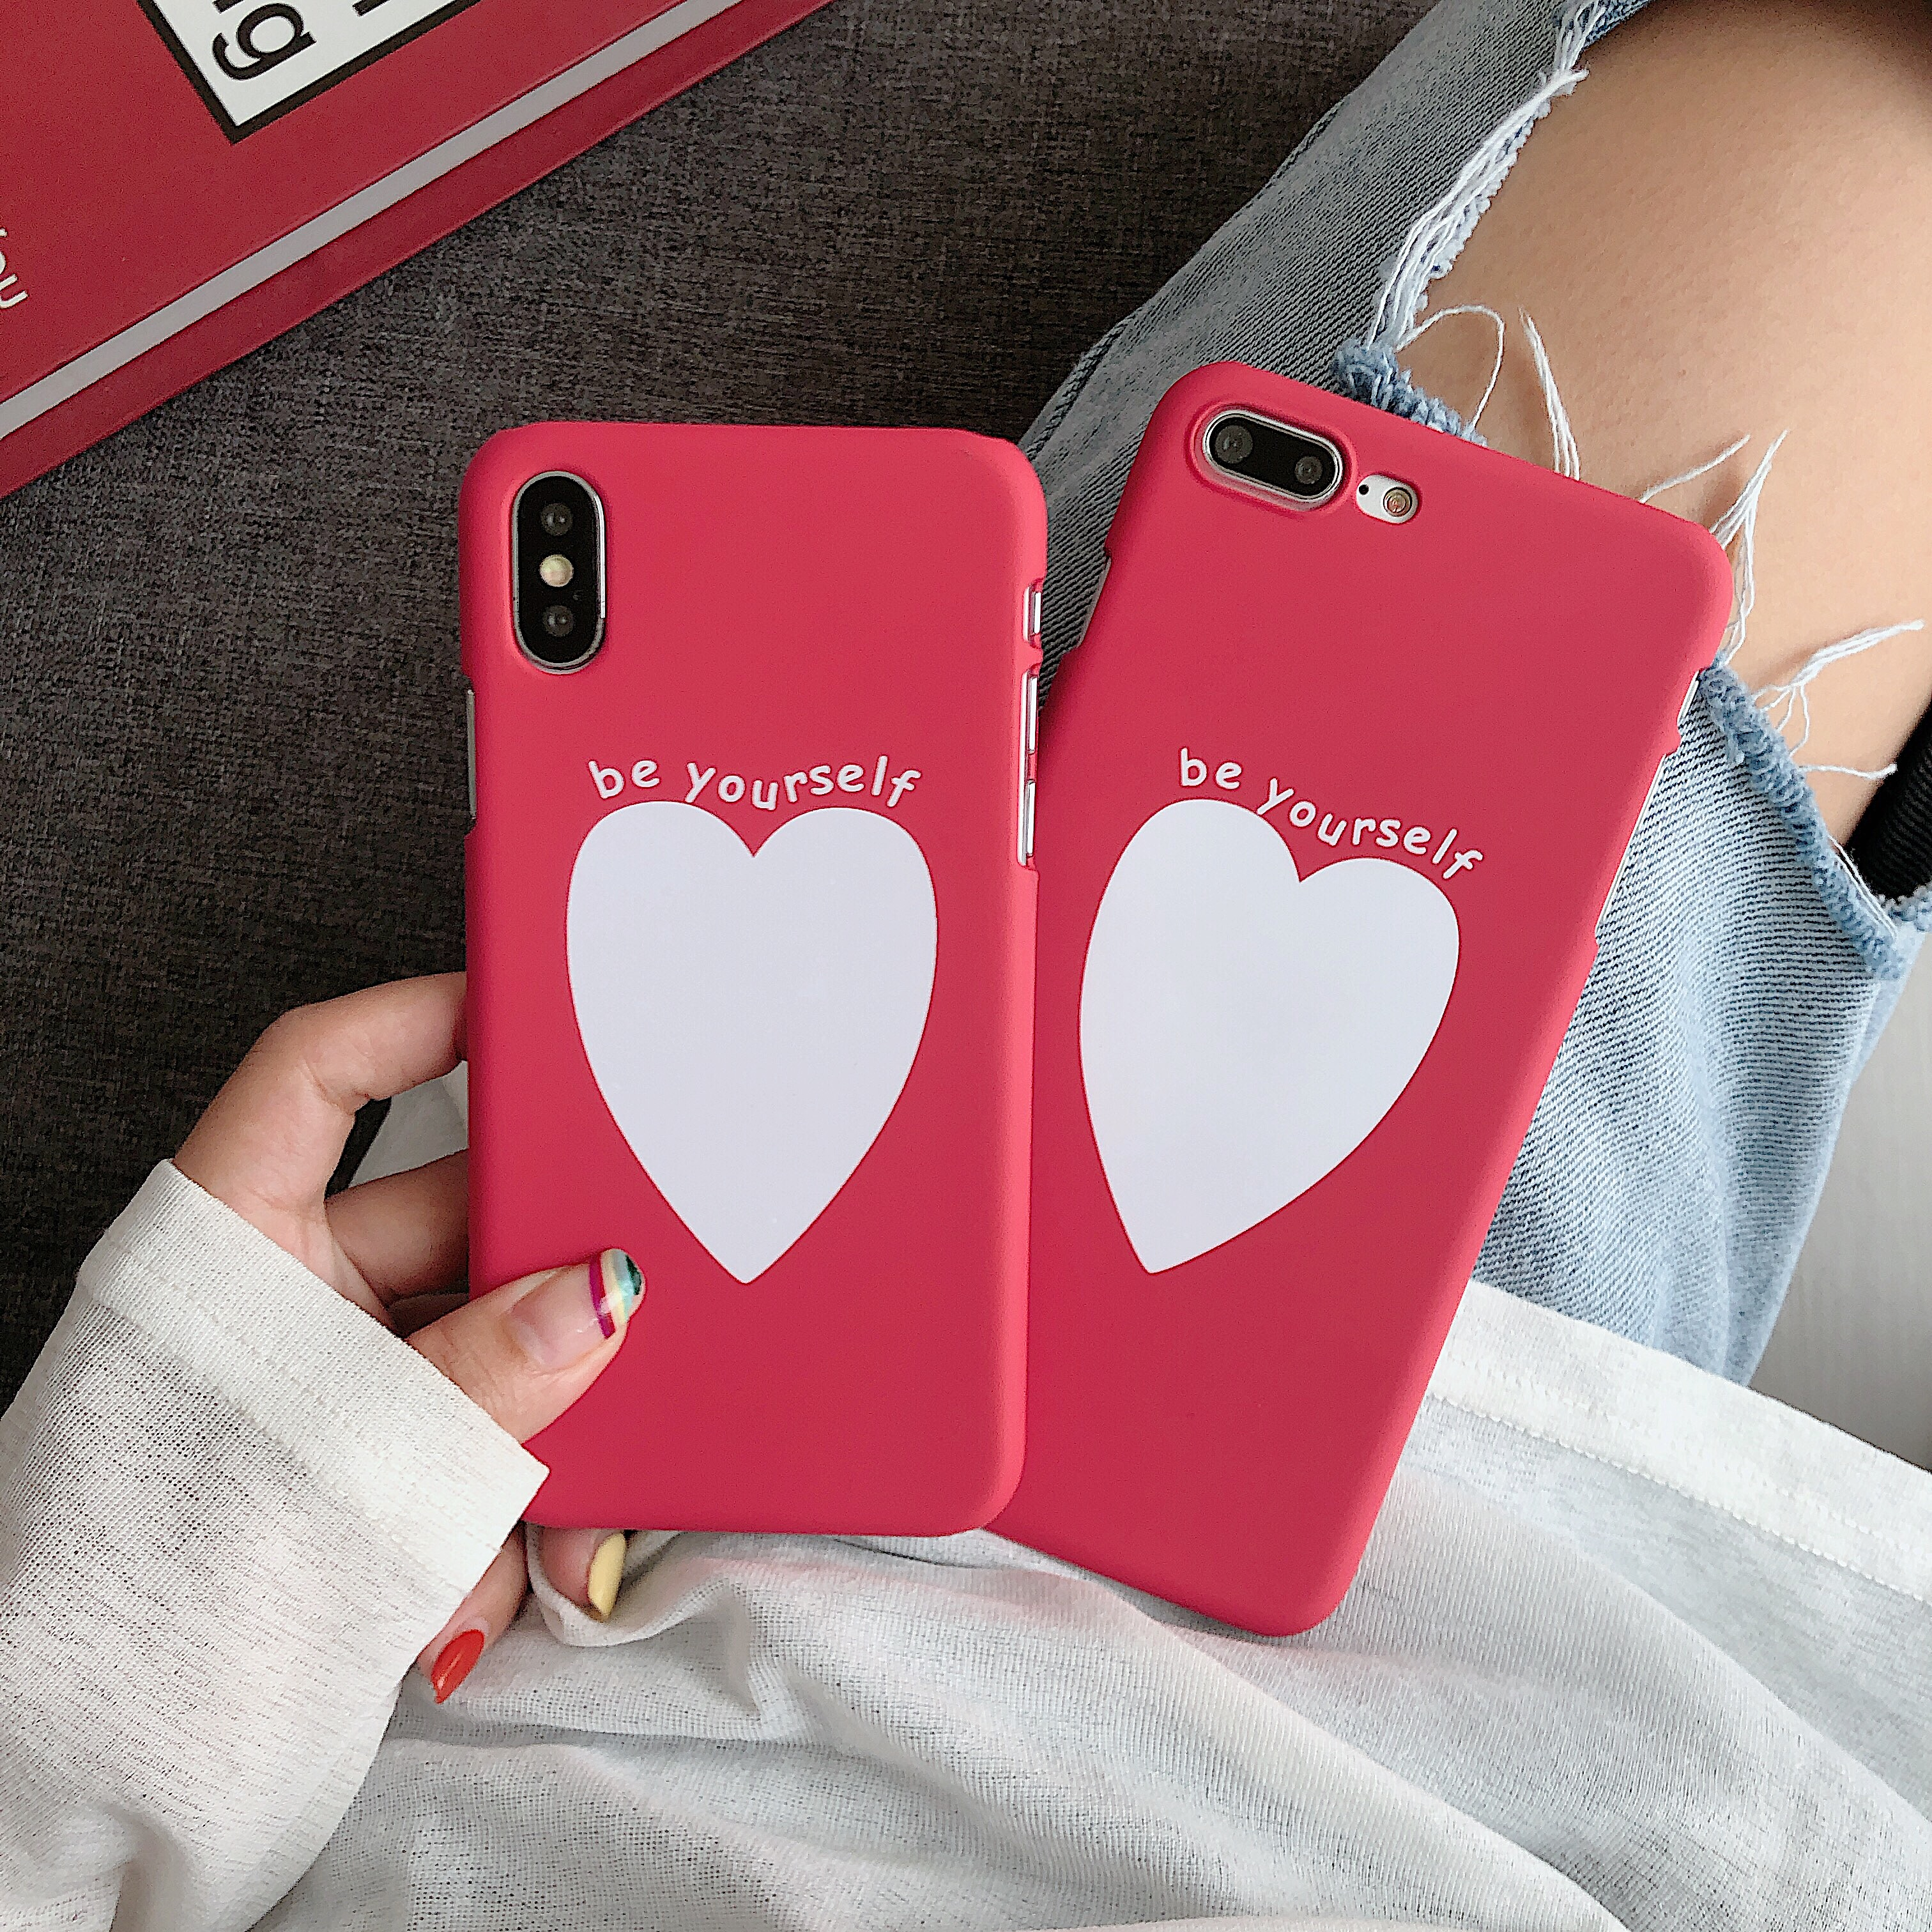 Image 2 - Phone Bag Case Accessories For iPhone X XR XS MAX 6 6s 7 8Plus Luxury Couple Love Heart Eyes Print Fashion Back Cover Capa Coque-in Half-wrapped Cases from Cellphones & Telecommunications